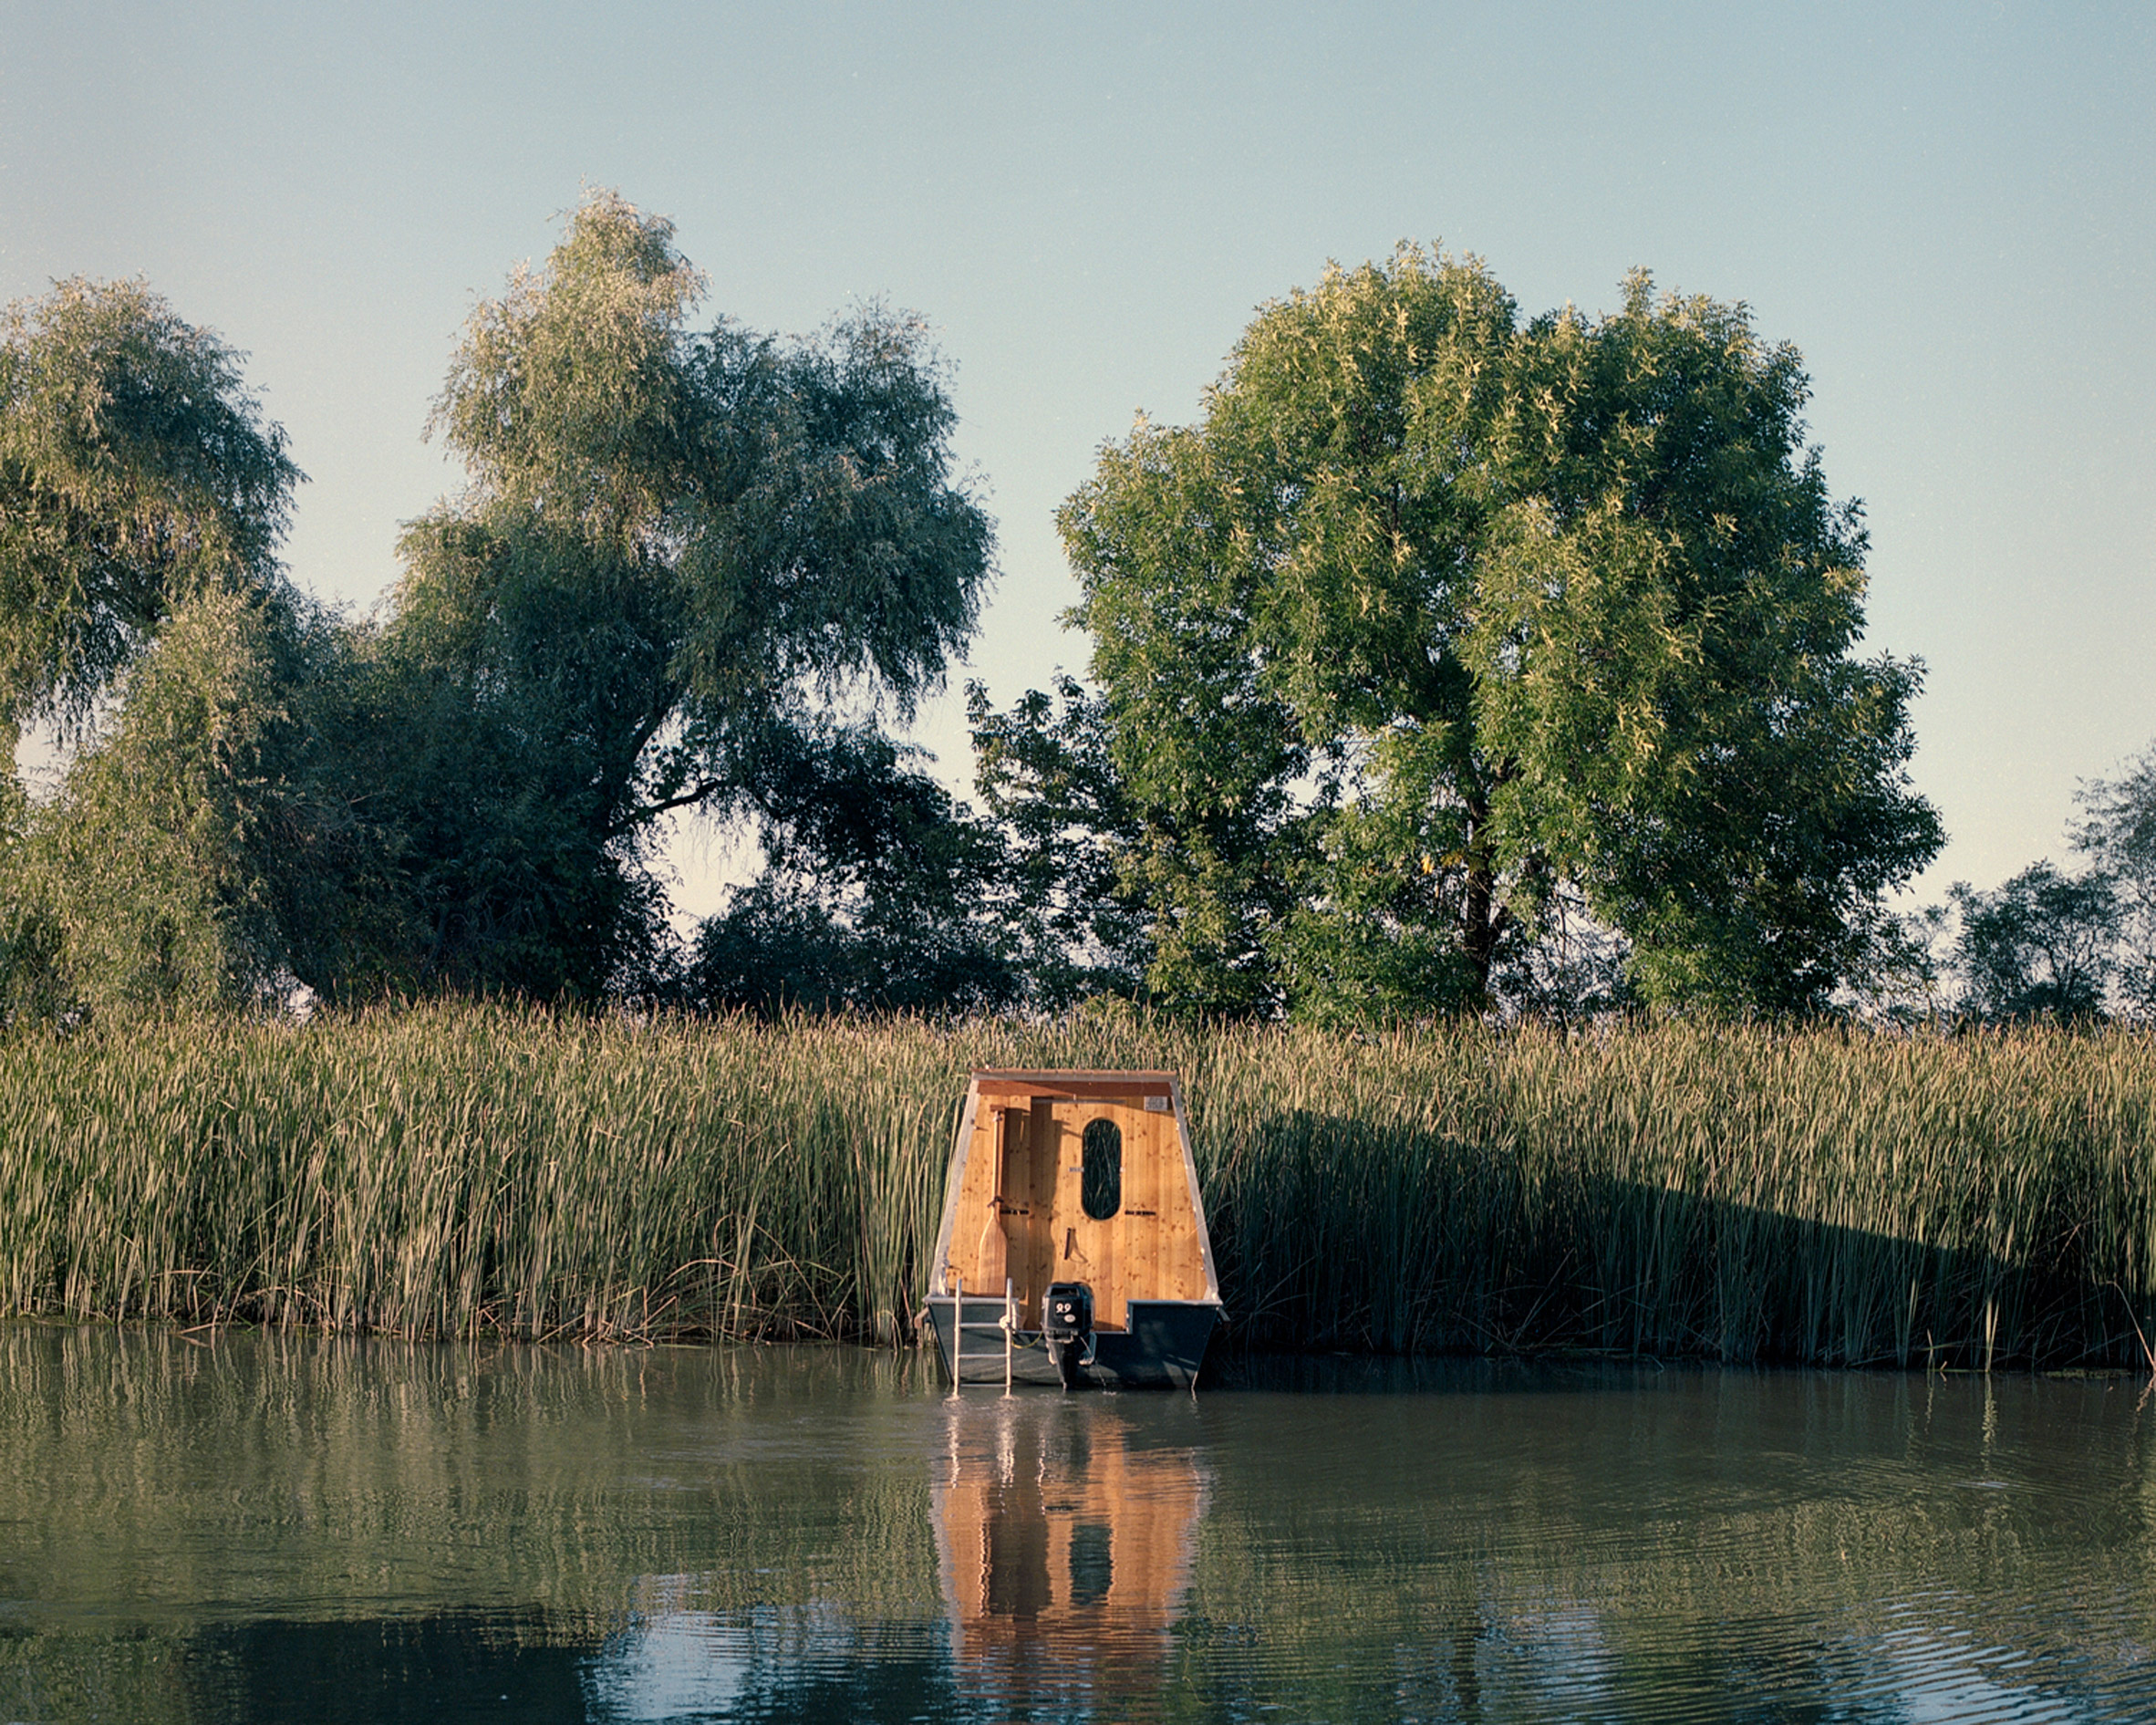 Exterior of the Sneci houseboat by Tamás Bene